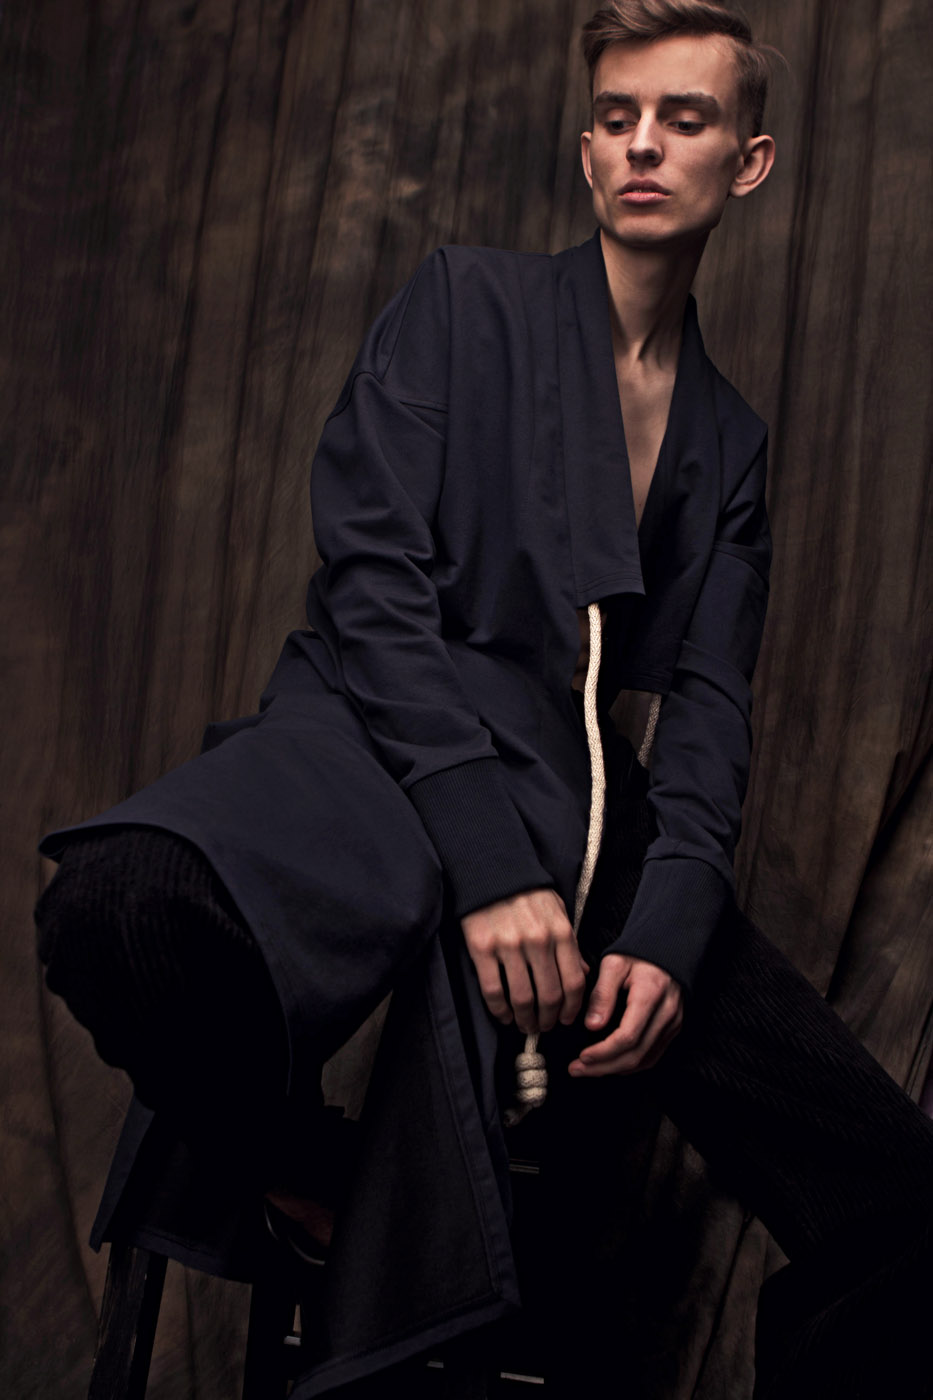 Pavel by Vlada Golubitskaya for CHASSEUR MAGAZINE (8)